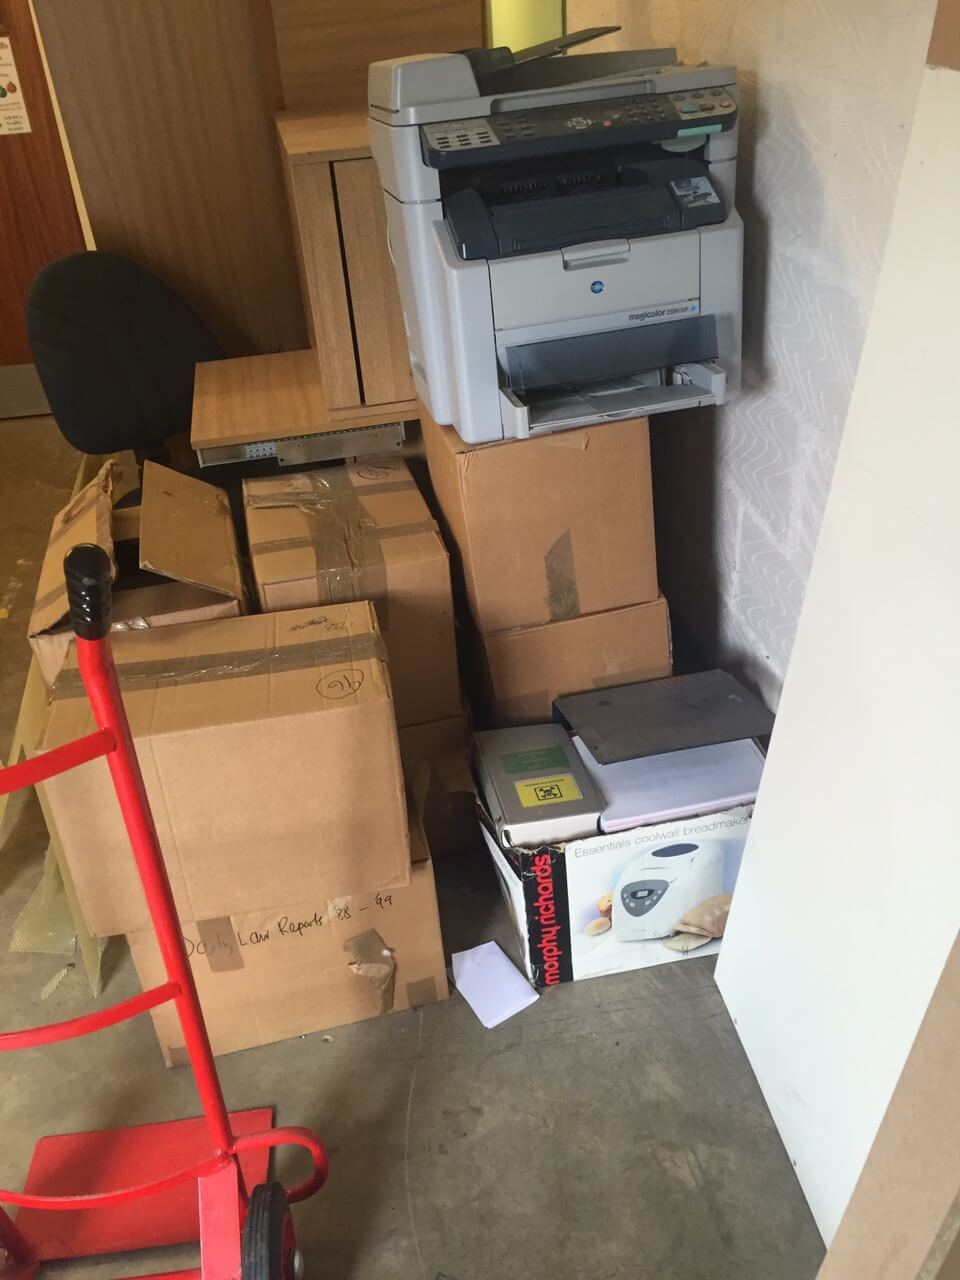 Chingford waste removal E4